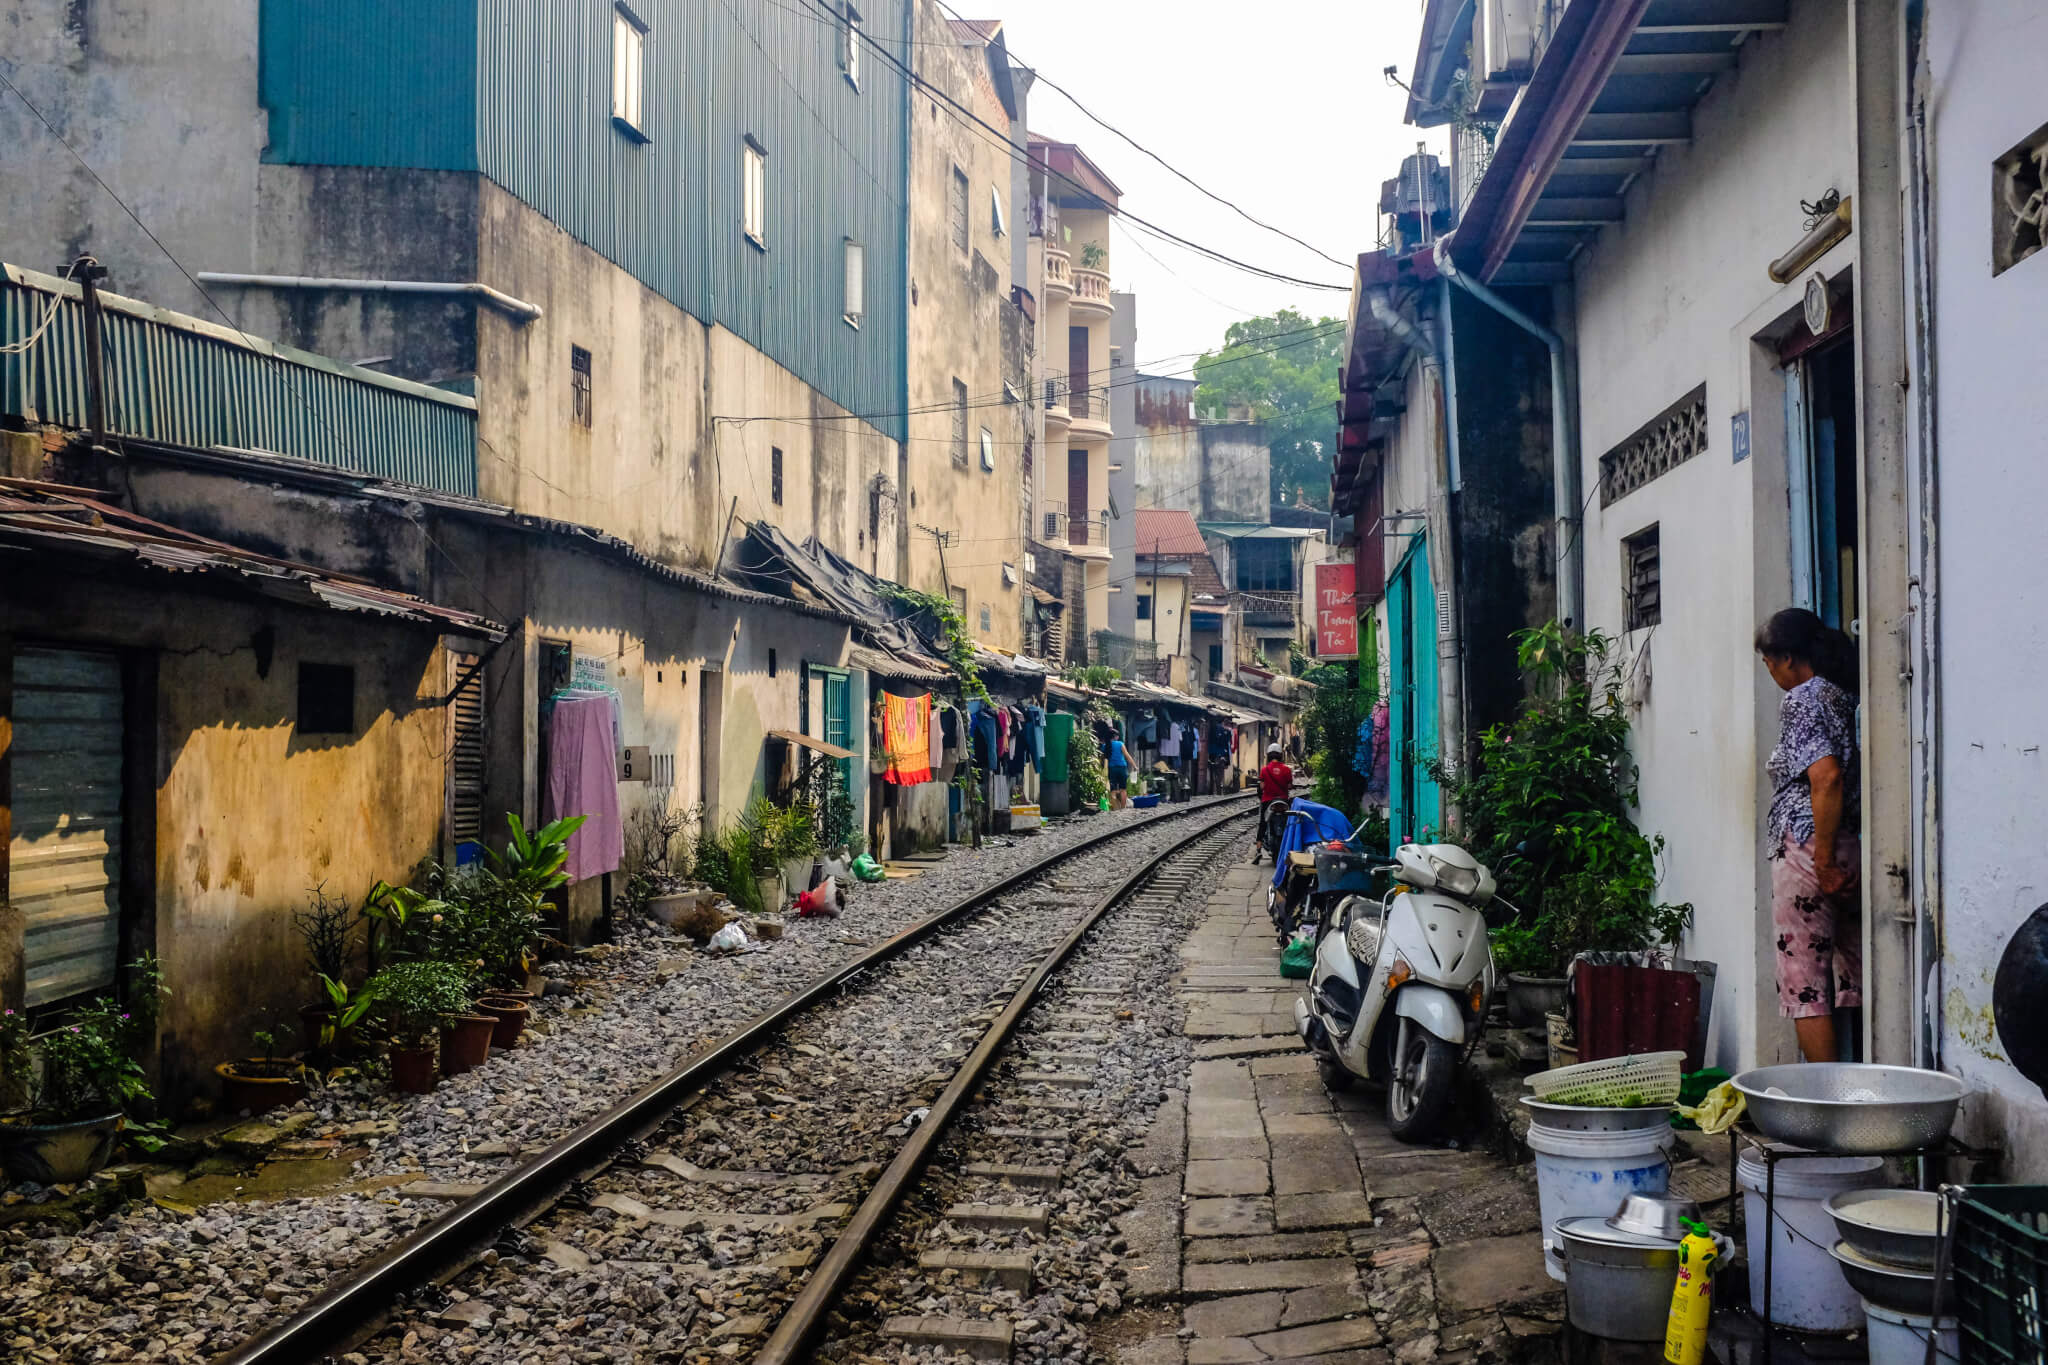 Experience Hanoi Train Street - urban phenomenon in the Vietnamese capital